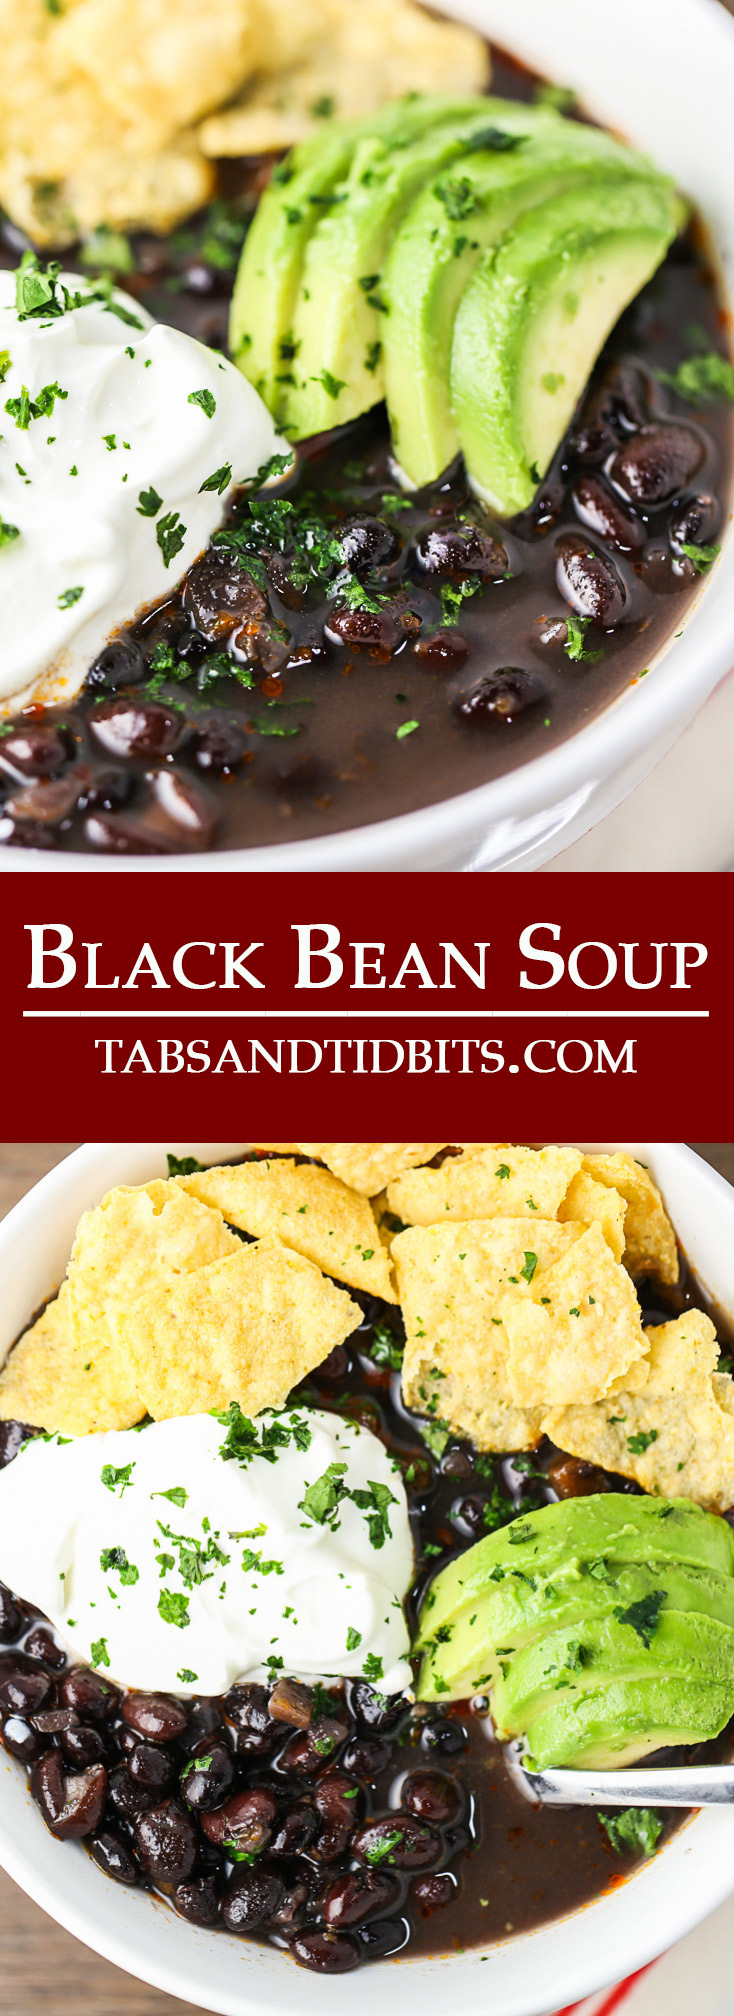 Dried black beans are cooked with veggies, adobo sauce, red wine vinegar, and oregano to deliver on one amazing pot of soup. The toppings only add to a deliciously warm and hearty bowl of soup!